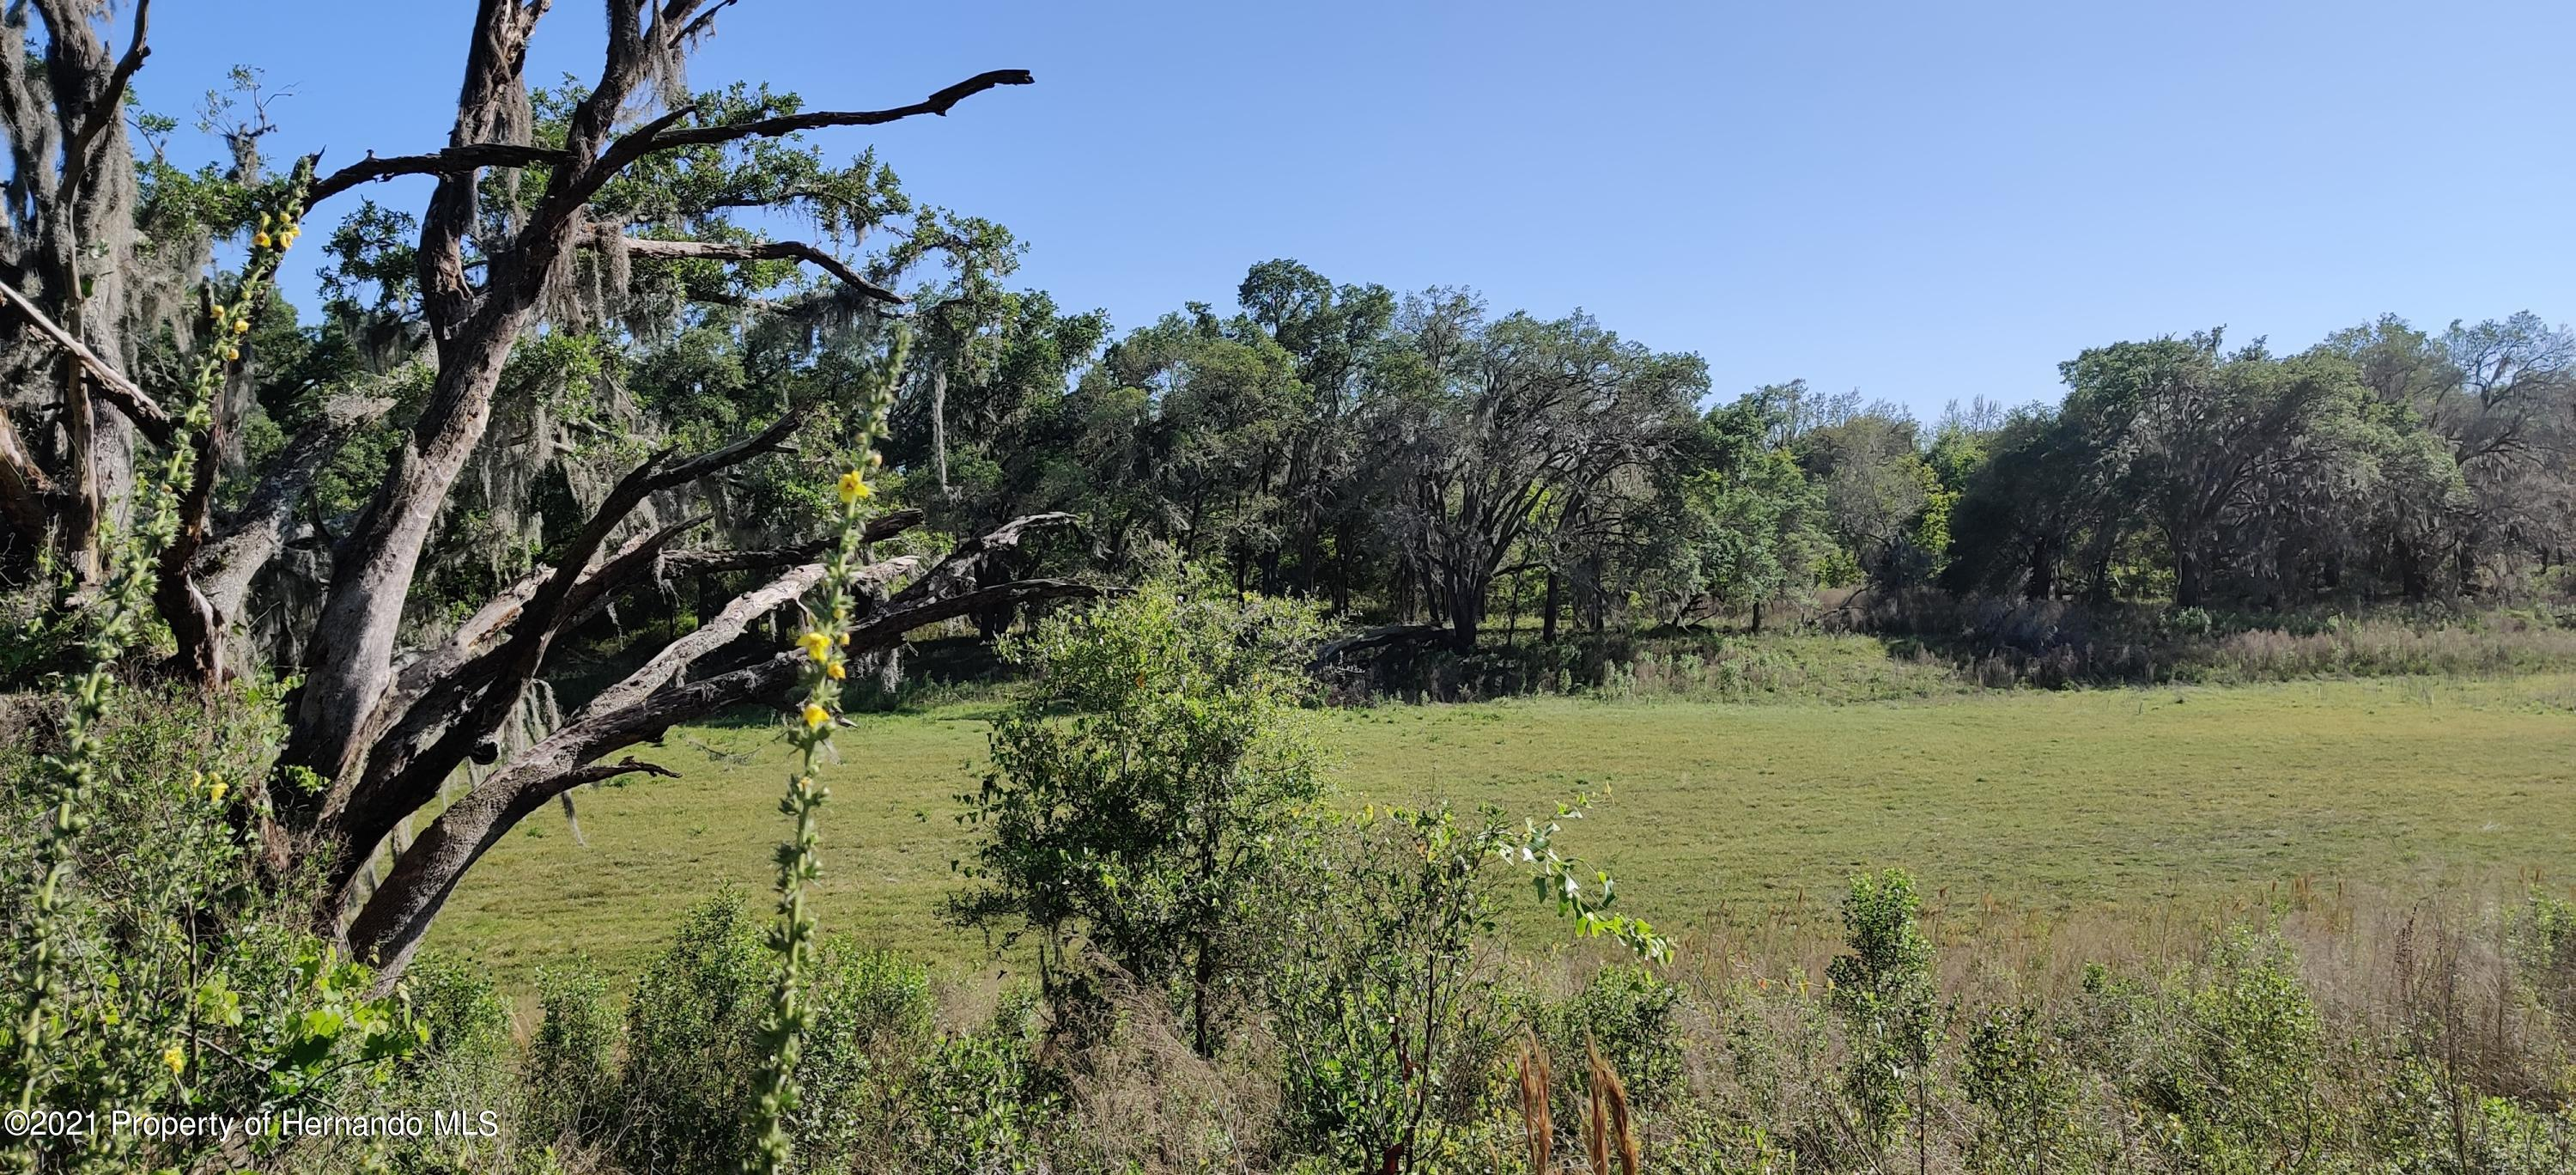 Details for 000 Mondon Hill And Wpa Road Road, Brooksville, FL 34601